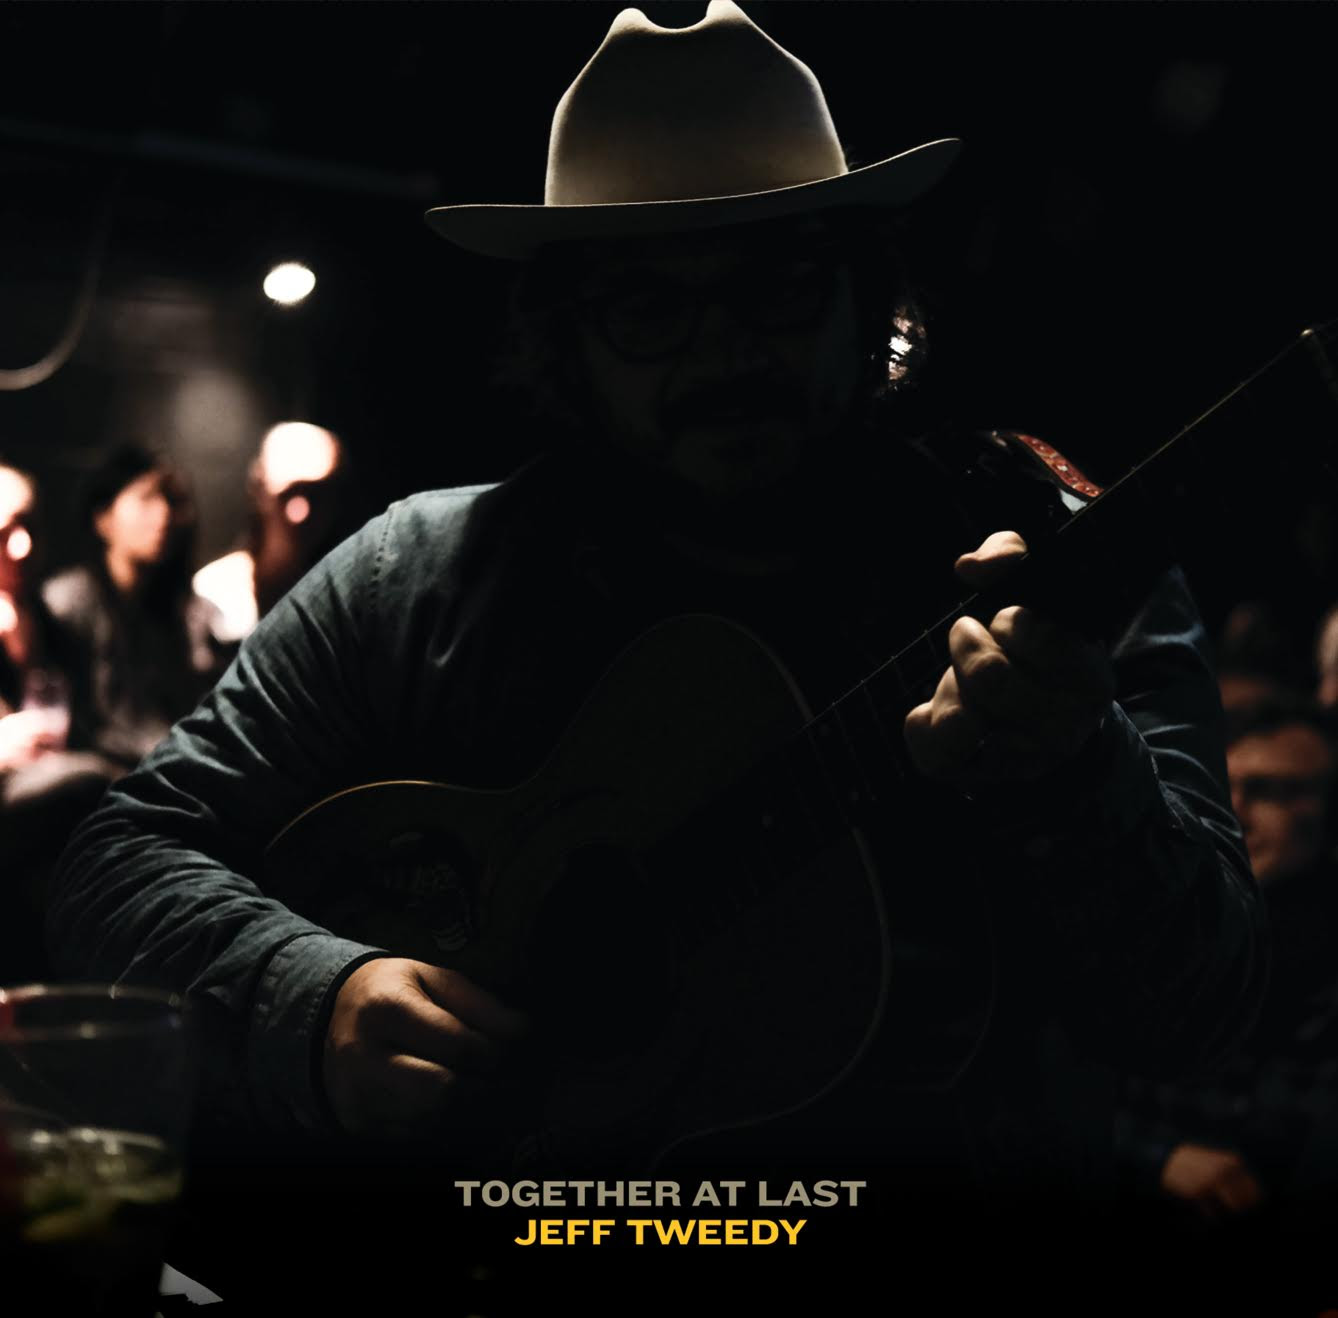 jeff-tweedy-together-at-last-vinyl-colored-gerosa-records